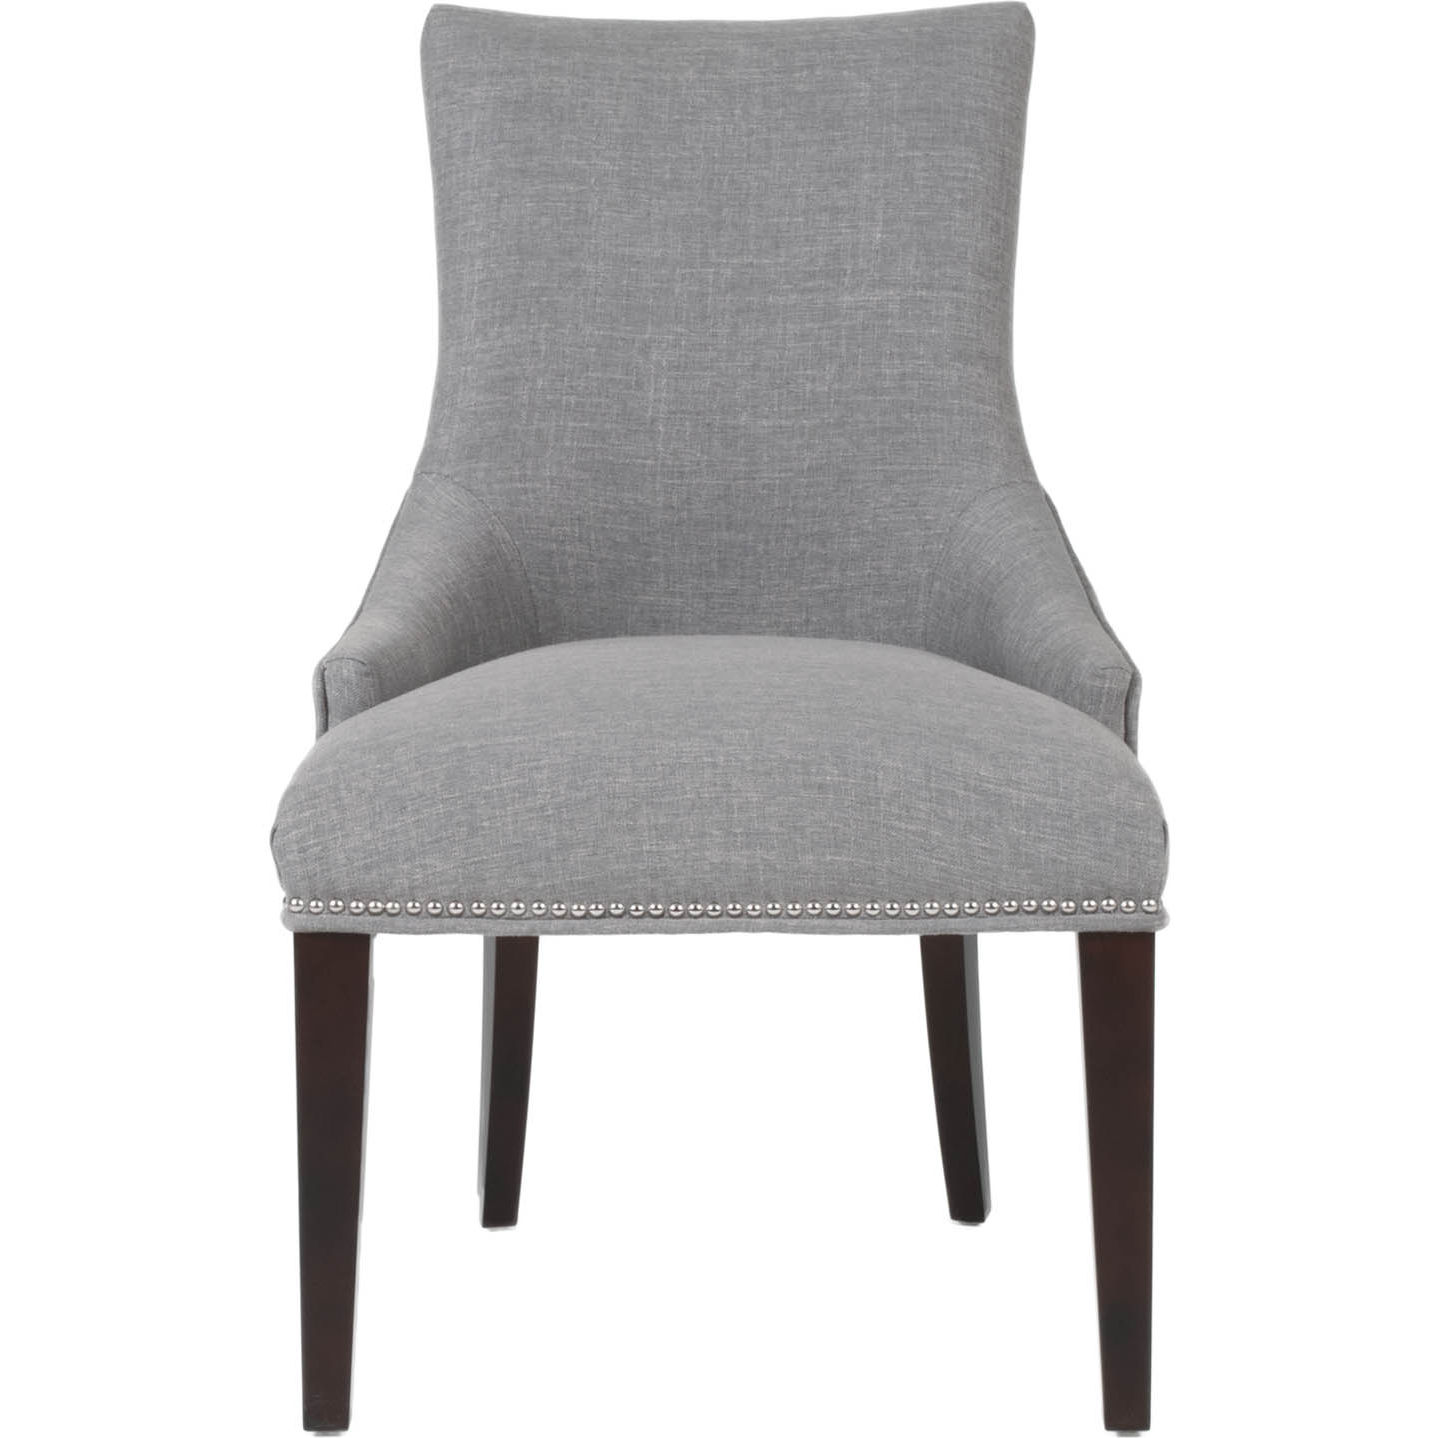 Avenue Dining Chair In Smoke Fabric W Tufted Back Nailhead By Orient Express Furniture